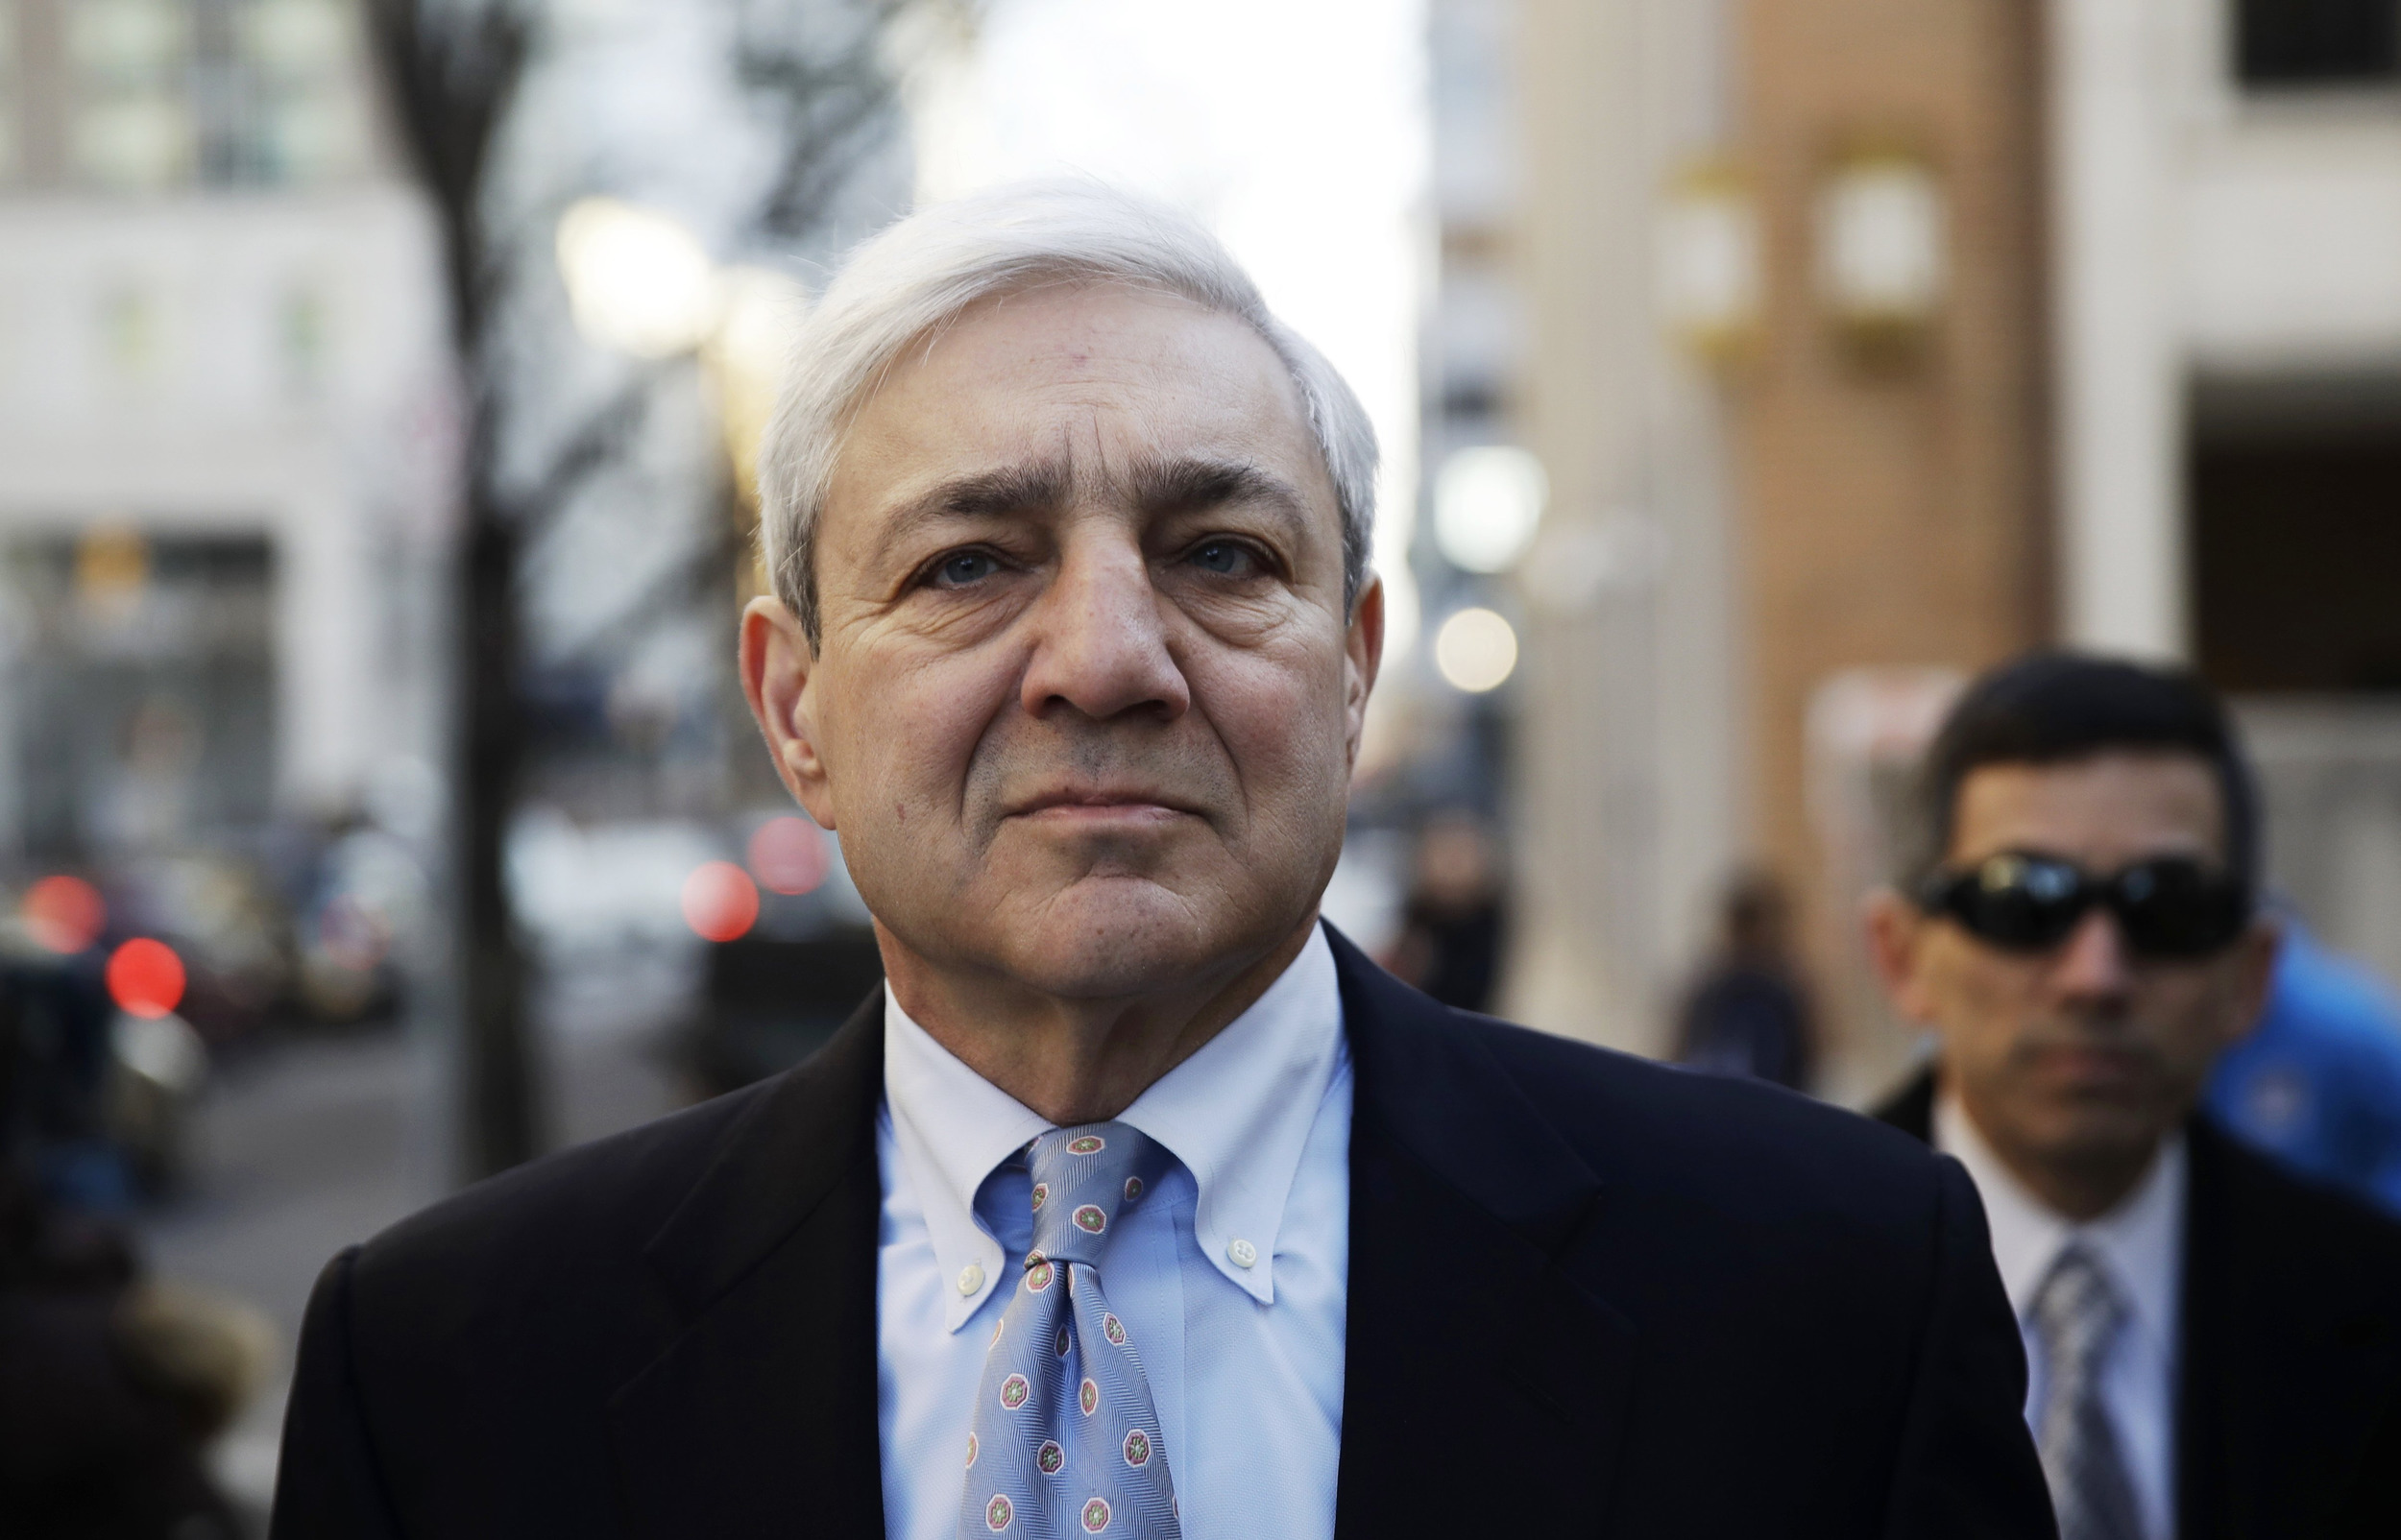 Jury Gets Case in Trial of Penn State's Ex-President